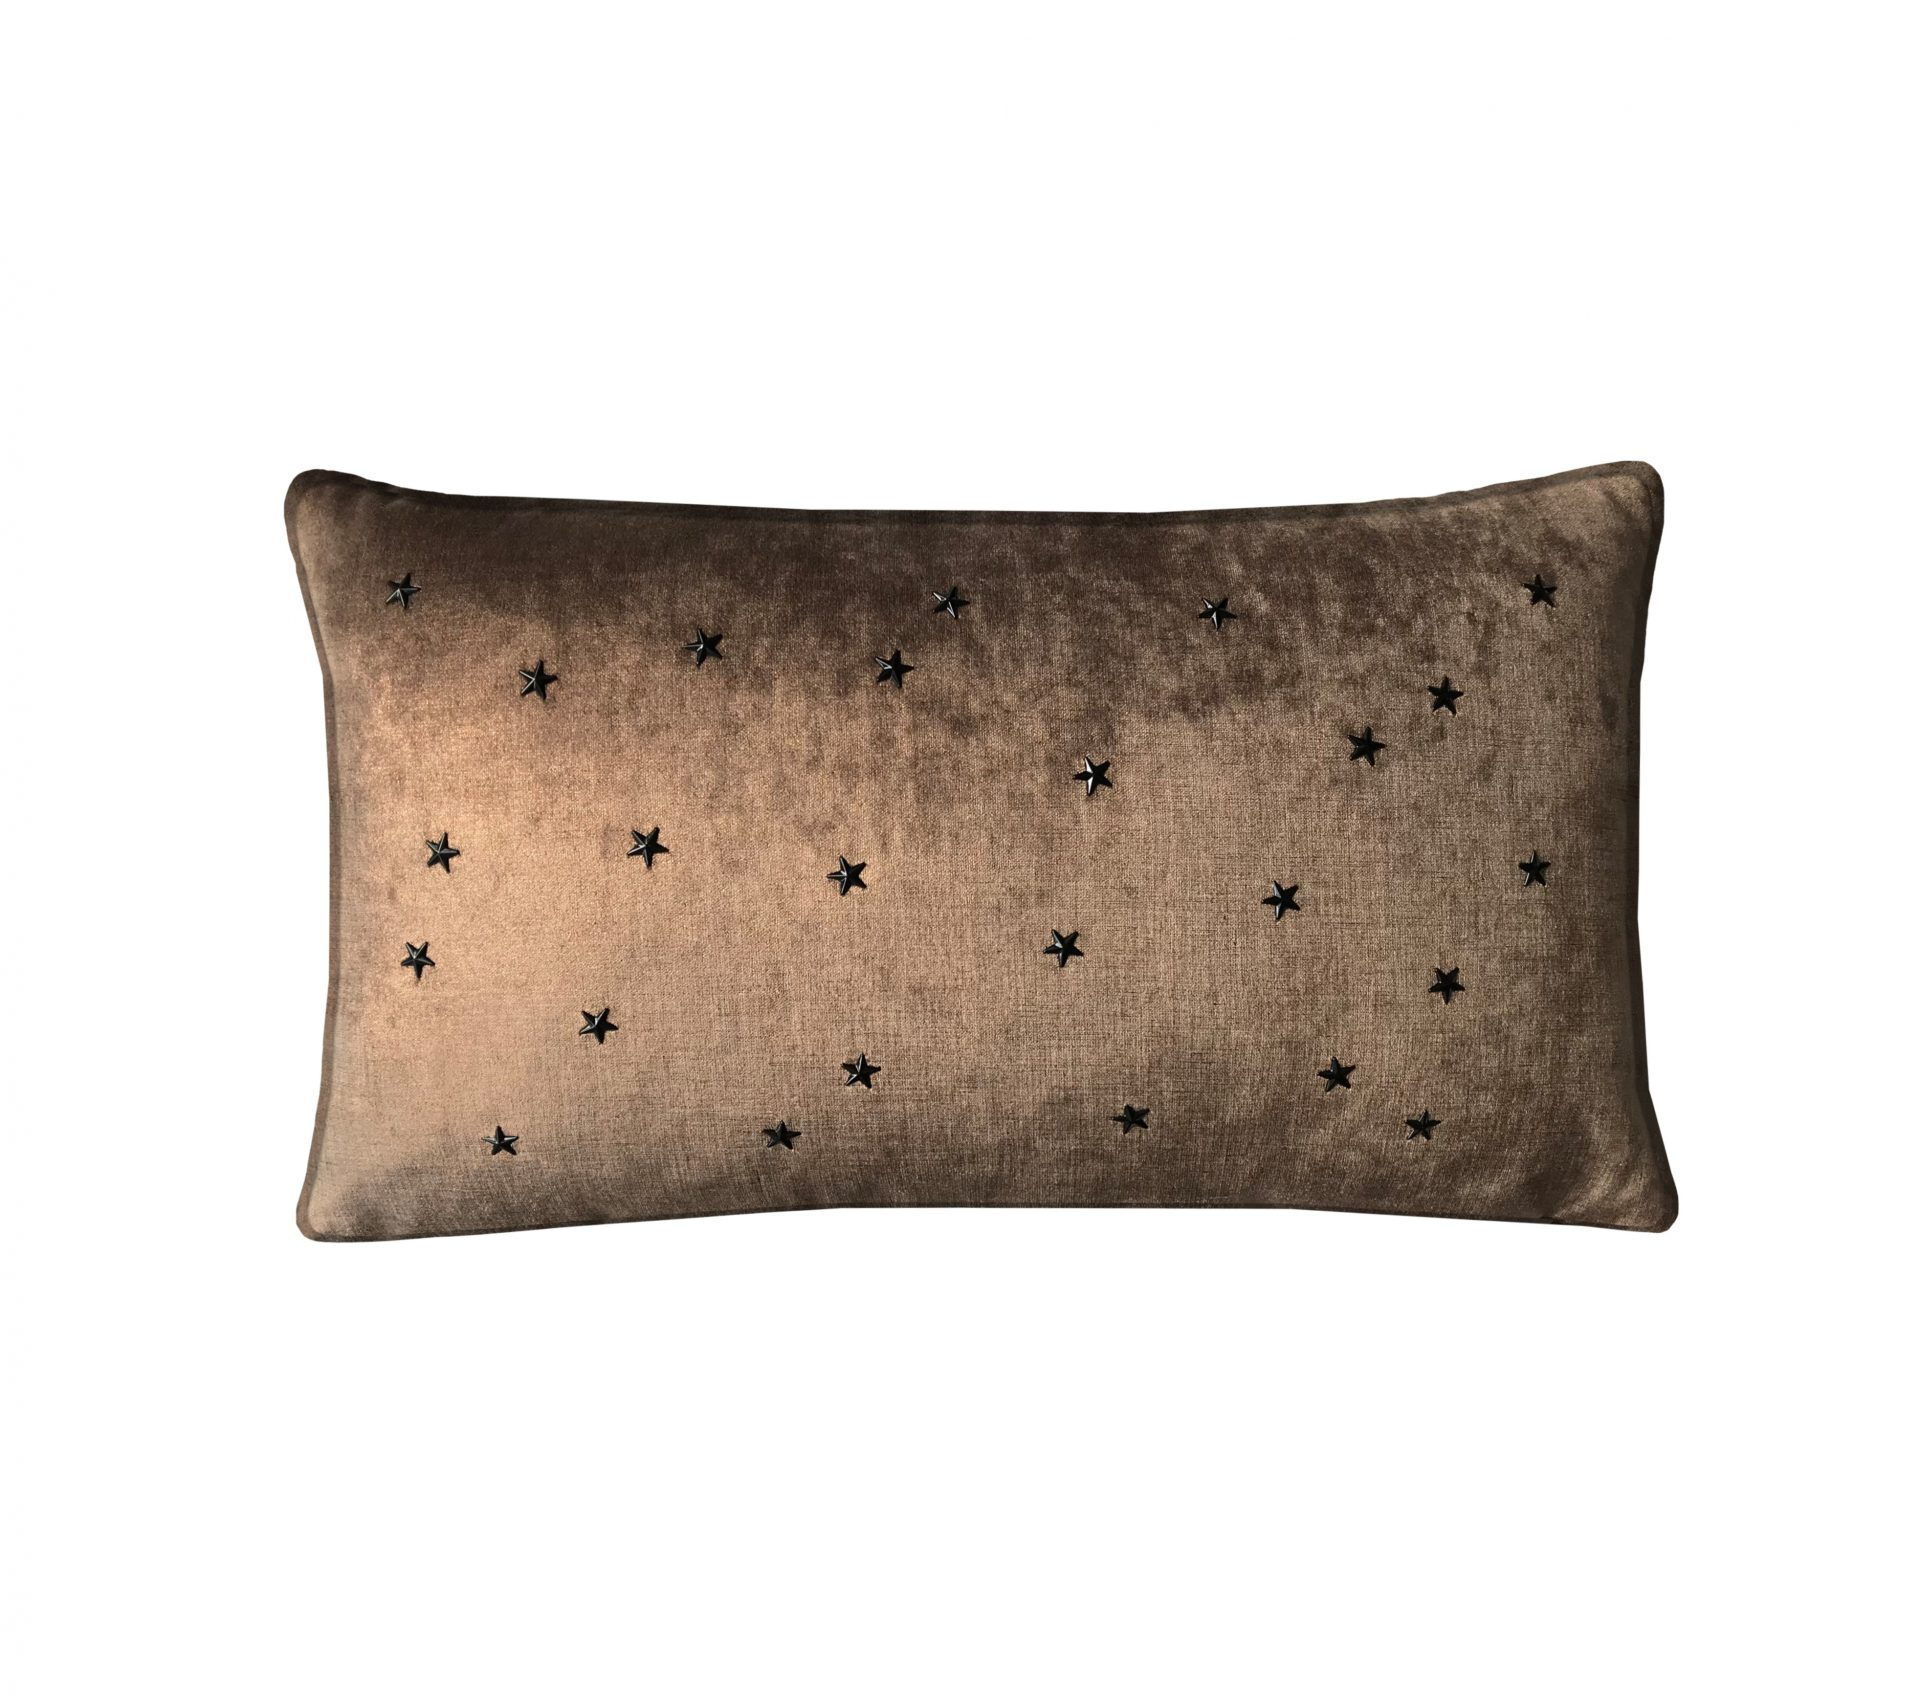 Copper throw pillow with black stars.